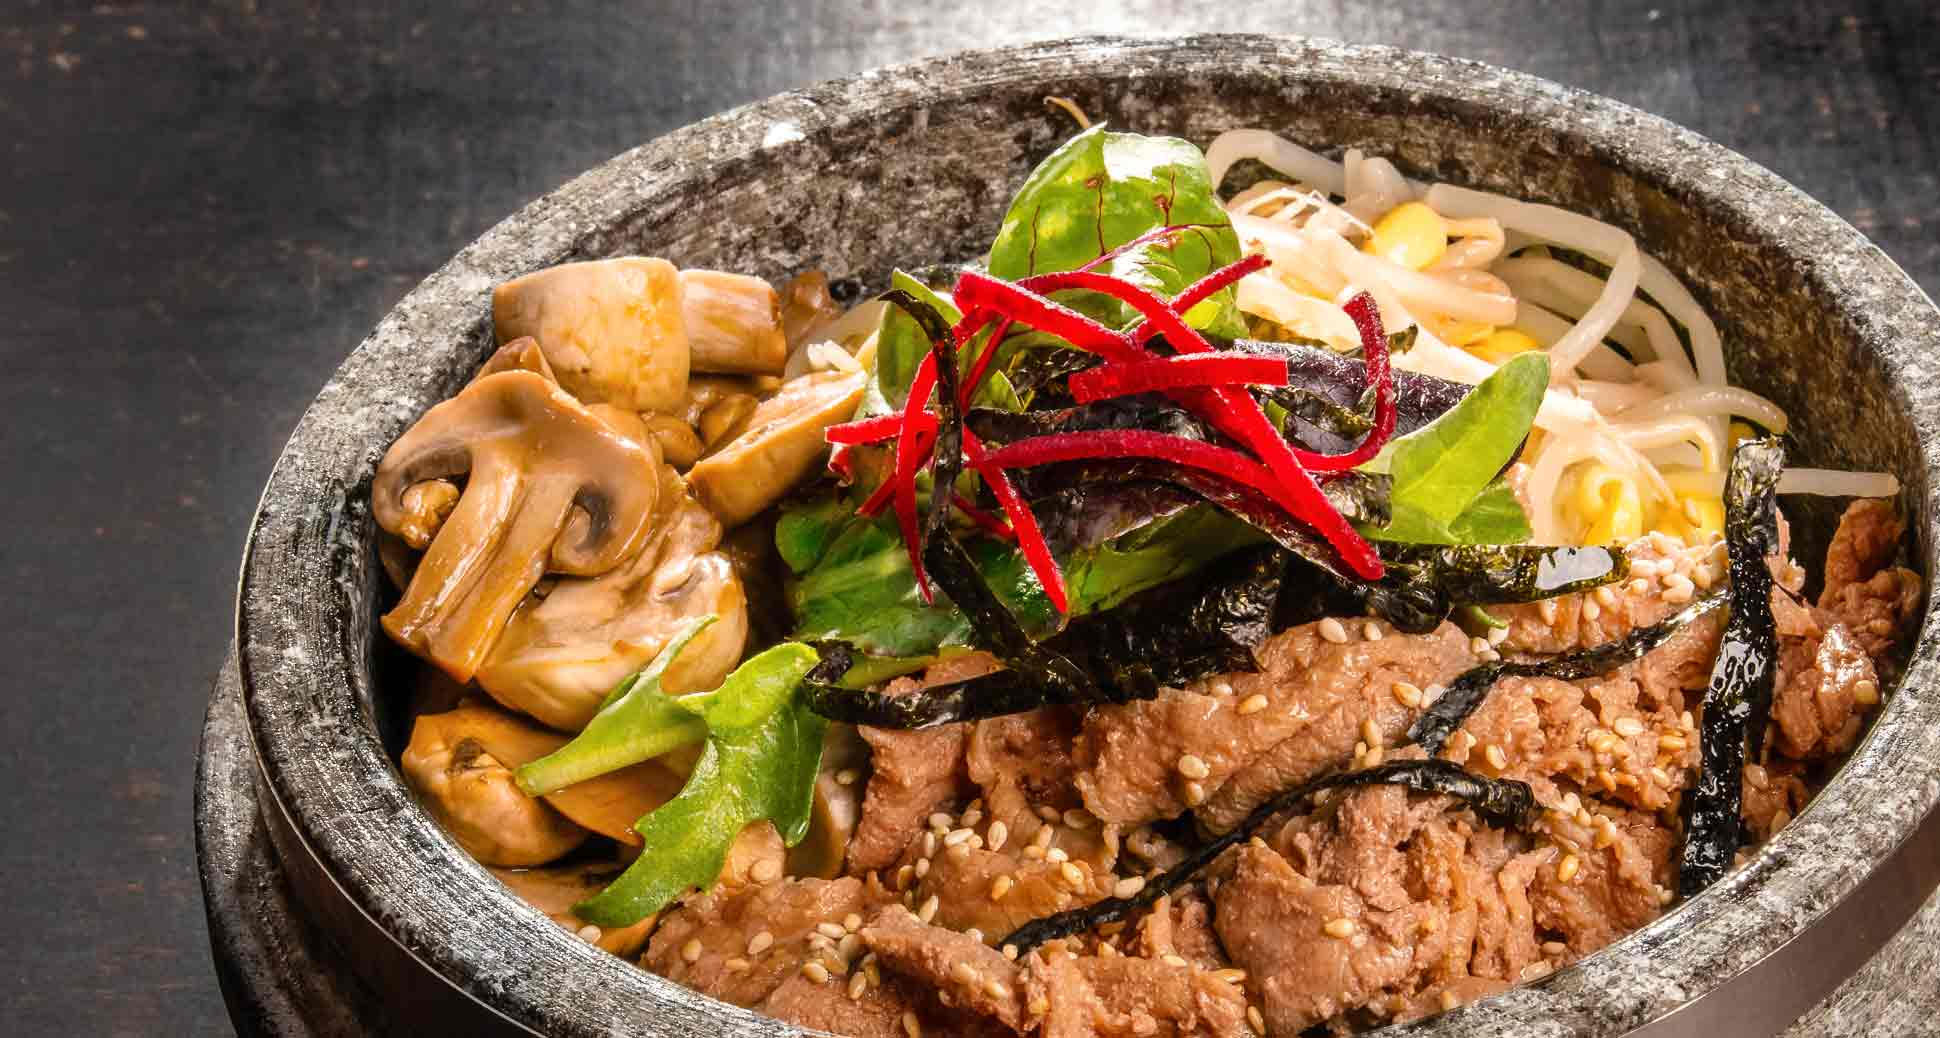 Stone Bowl Bulgogi Bibim-bap: Simple Yet Nutritious and Delicious